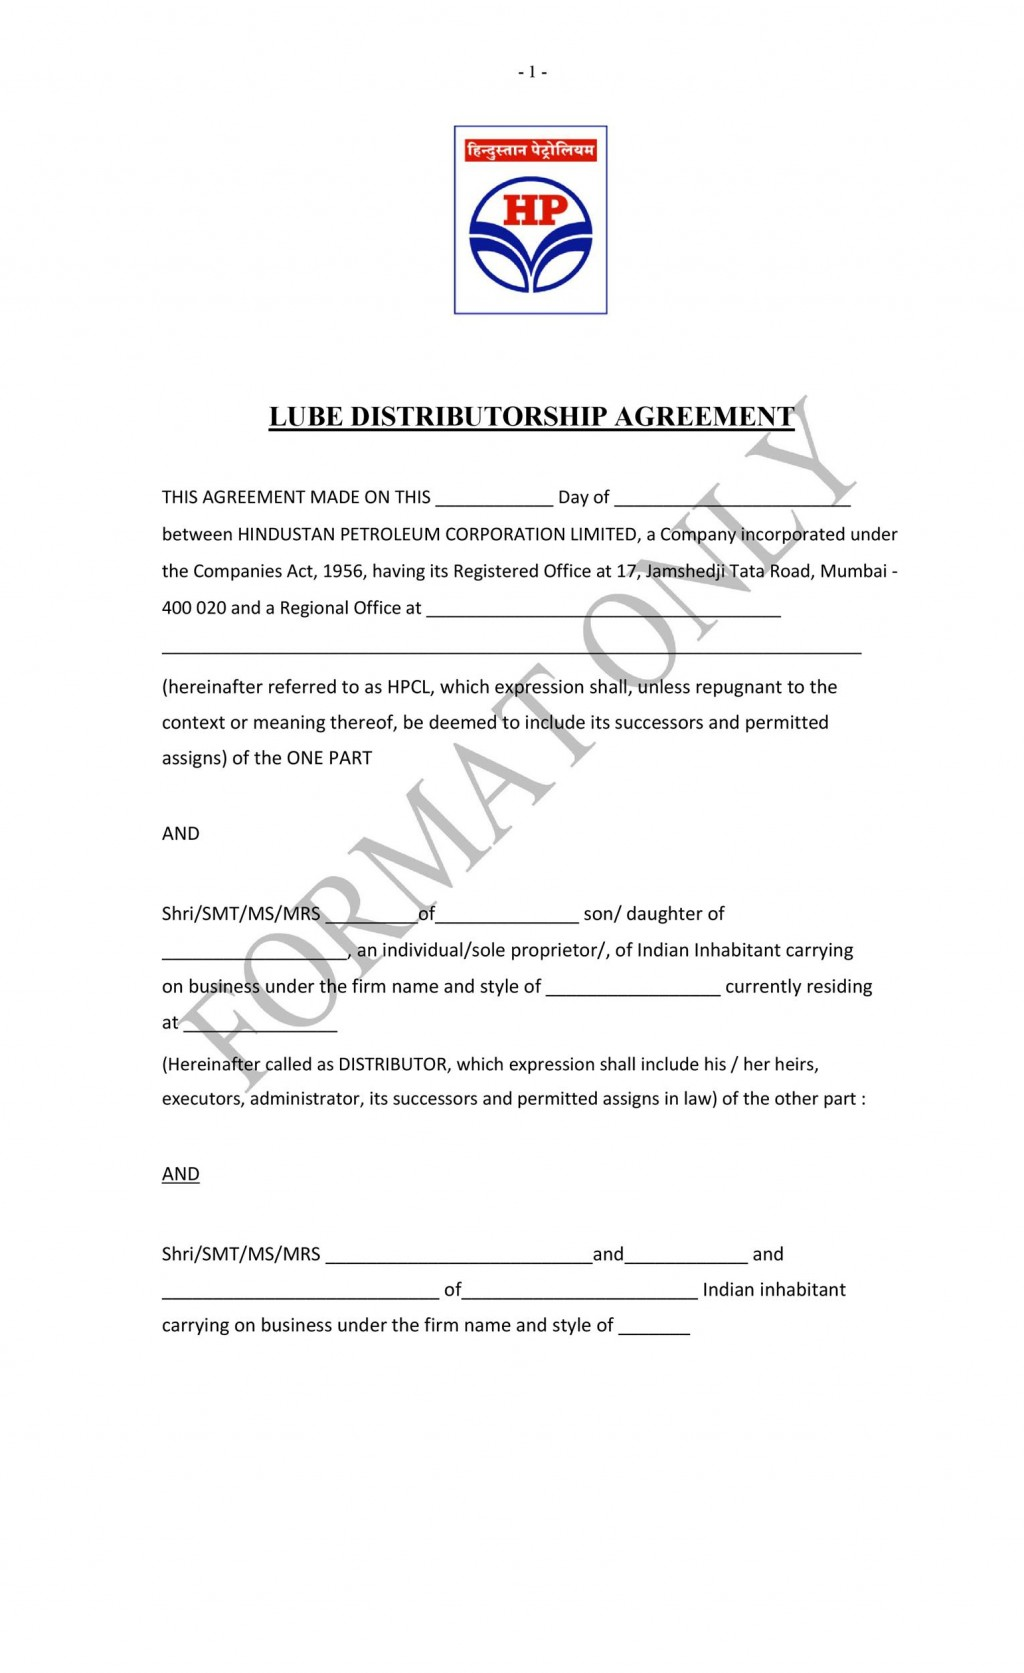 007 Incredible Exclusive Distribution Contract Template High Resolution  Sole Distributor Agreement Non FreeLarge